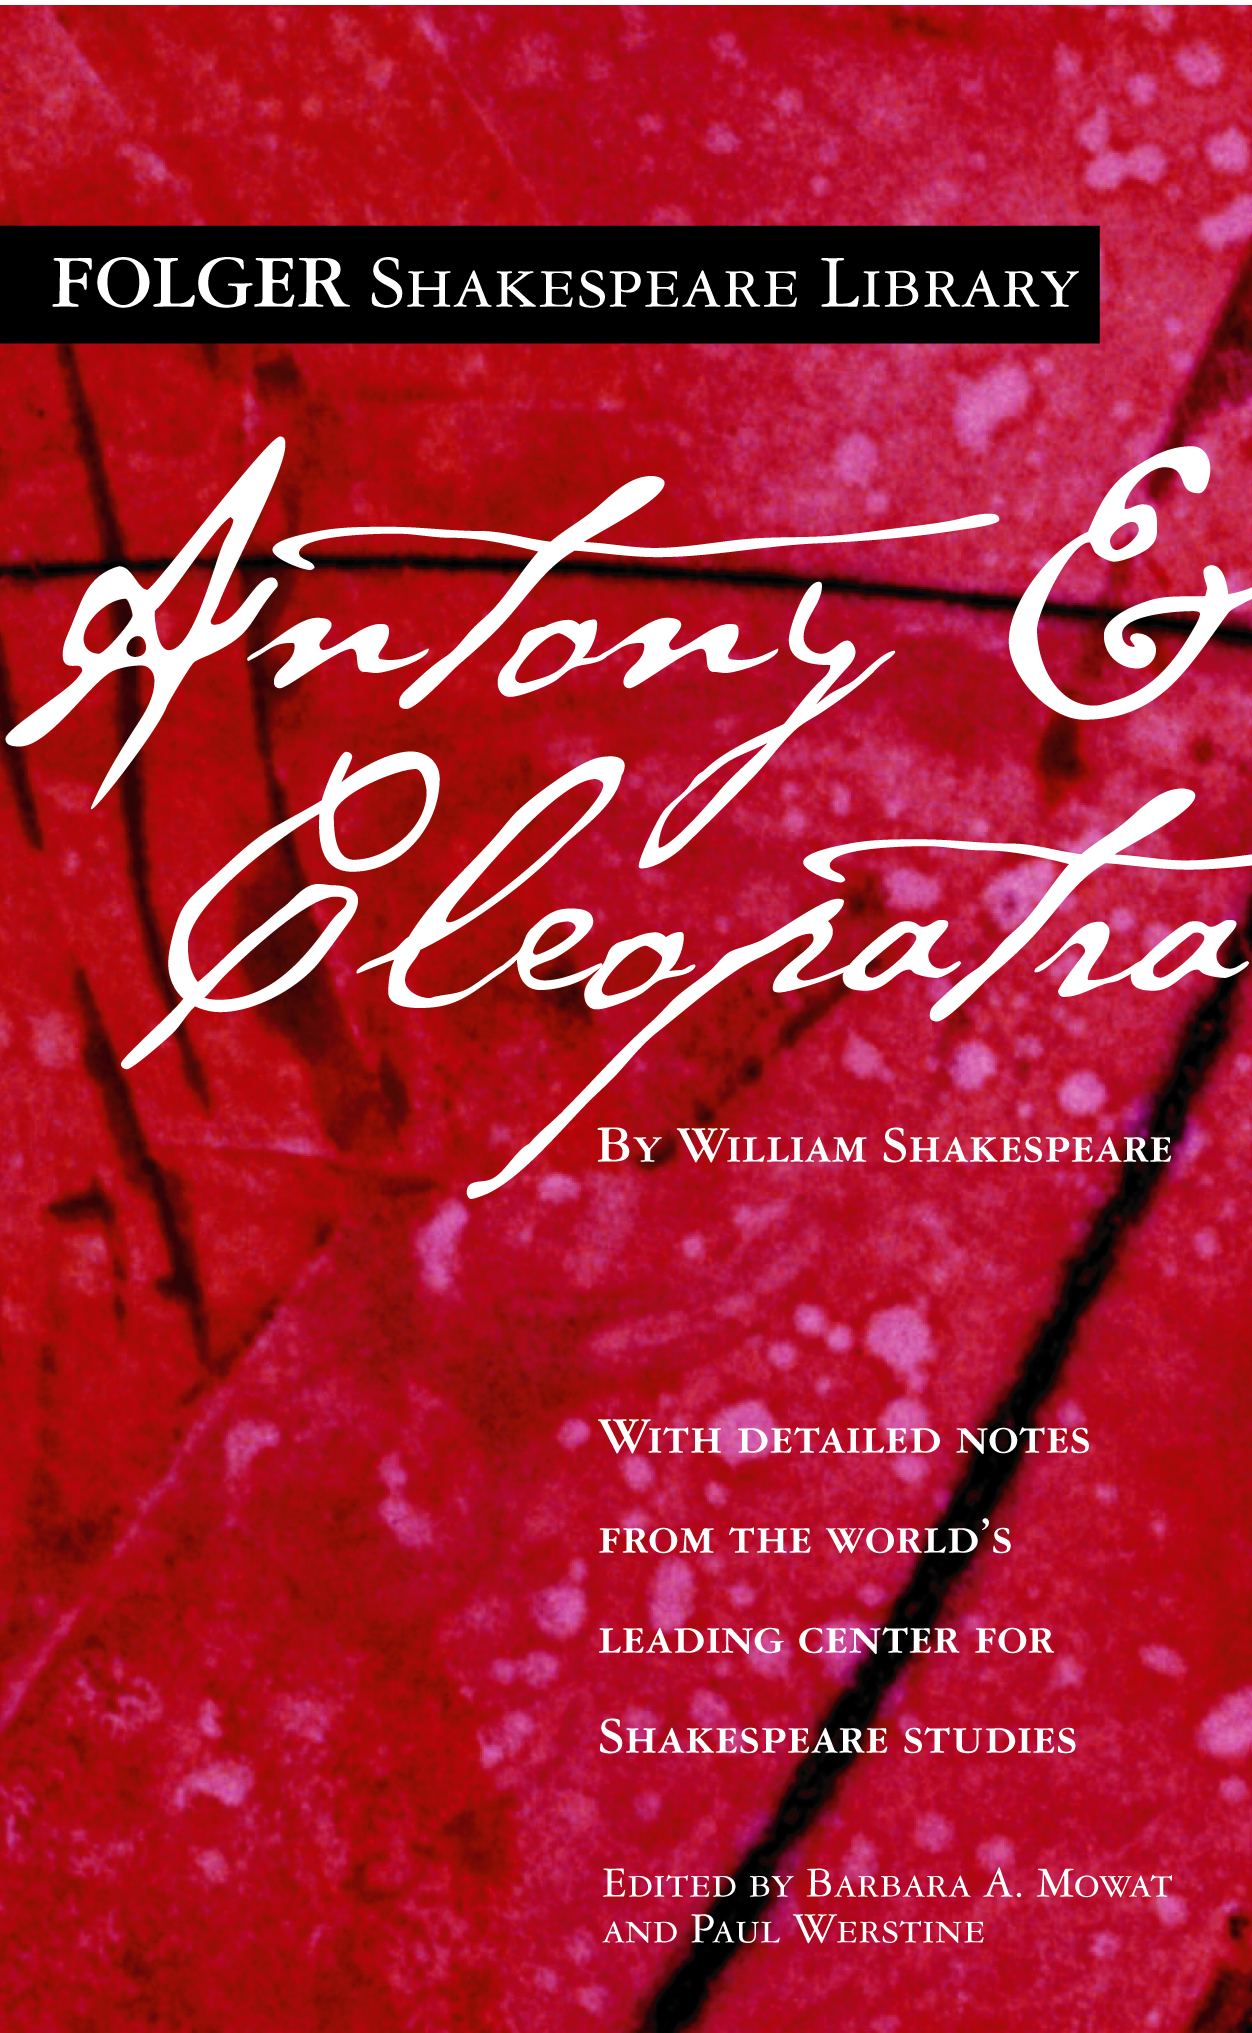 william shakespeares antony and cleopatra essay William shakespeare's antony and cleopatra is a tale of love and war critical essay by william d wolf impression of antony in act 1 of antony and cleopatra.